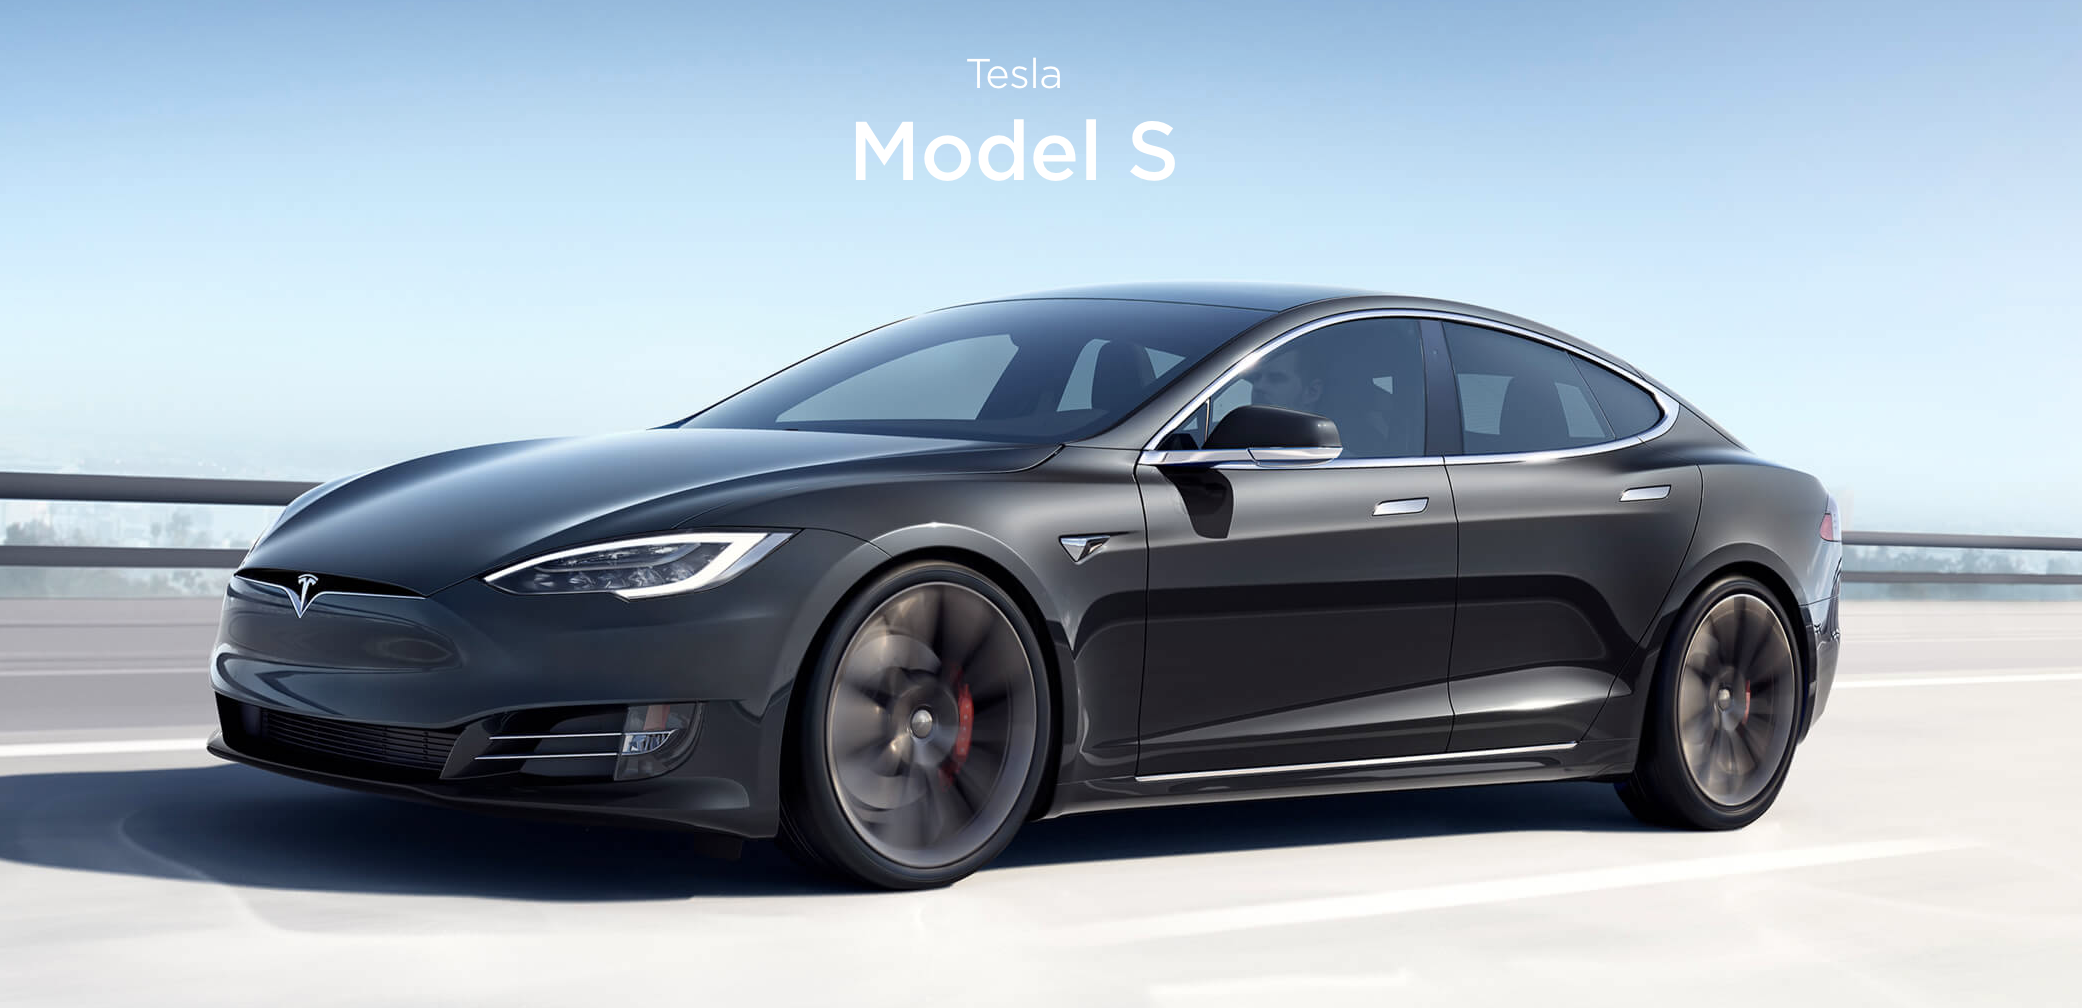 Model S is built from the ground up as an electric vehicle, with high-strength architecture and a floor-mounted battery pack allowing for incredible impact protection. #Tesla #electriccar